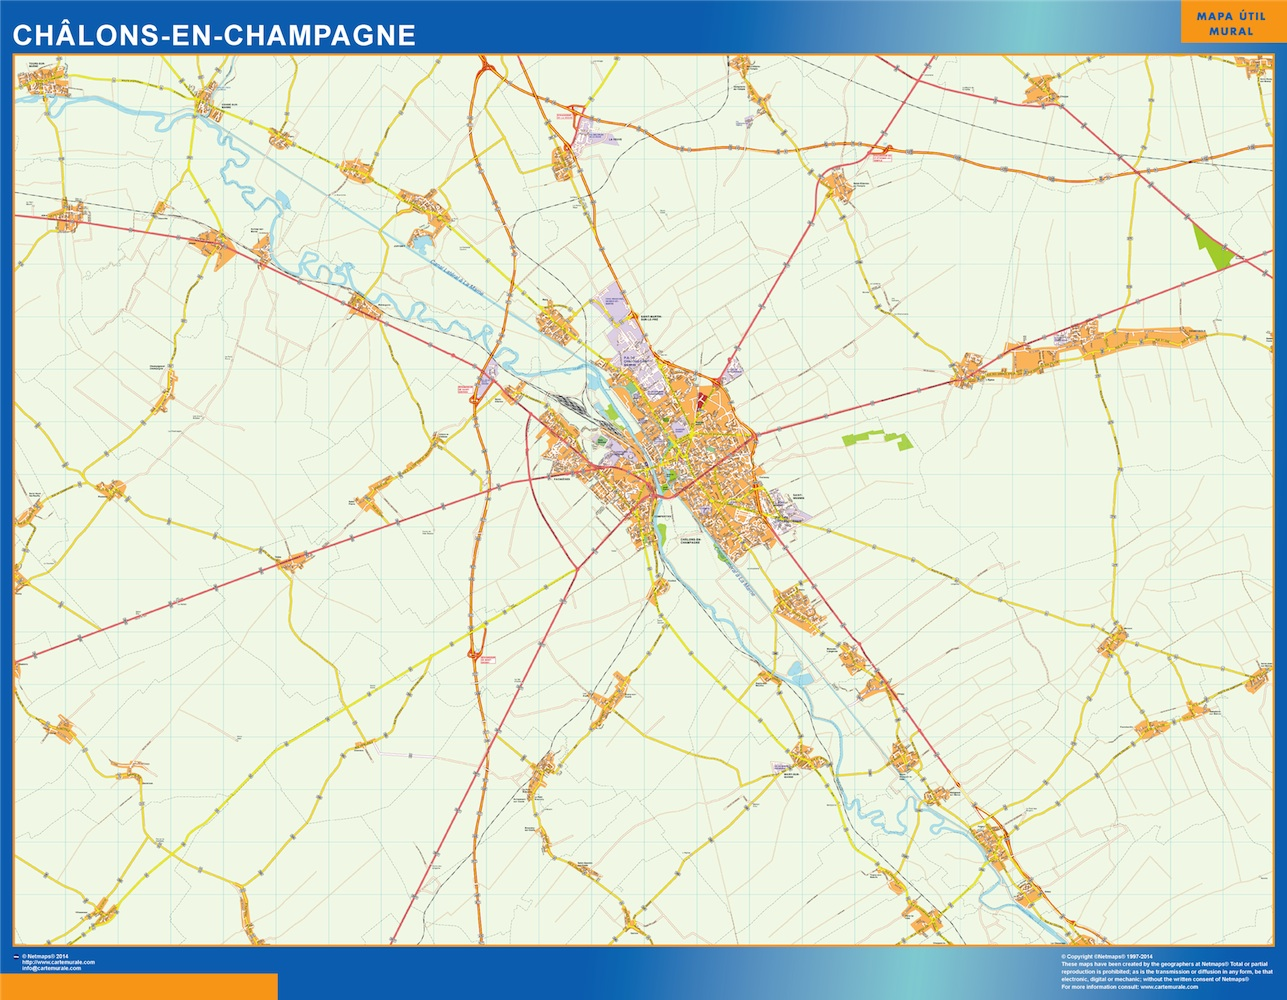 chalons-en-champagne street map